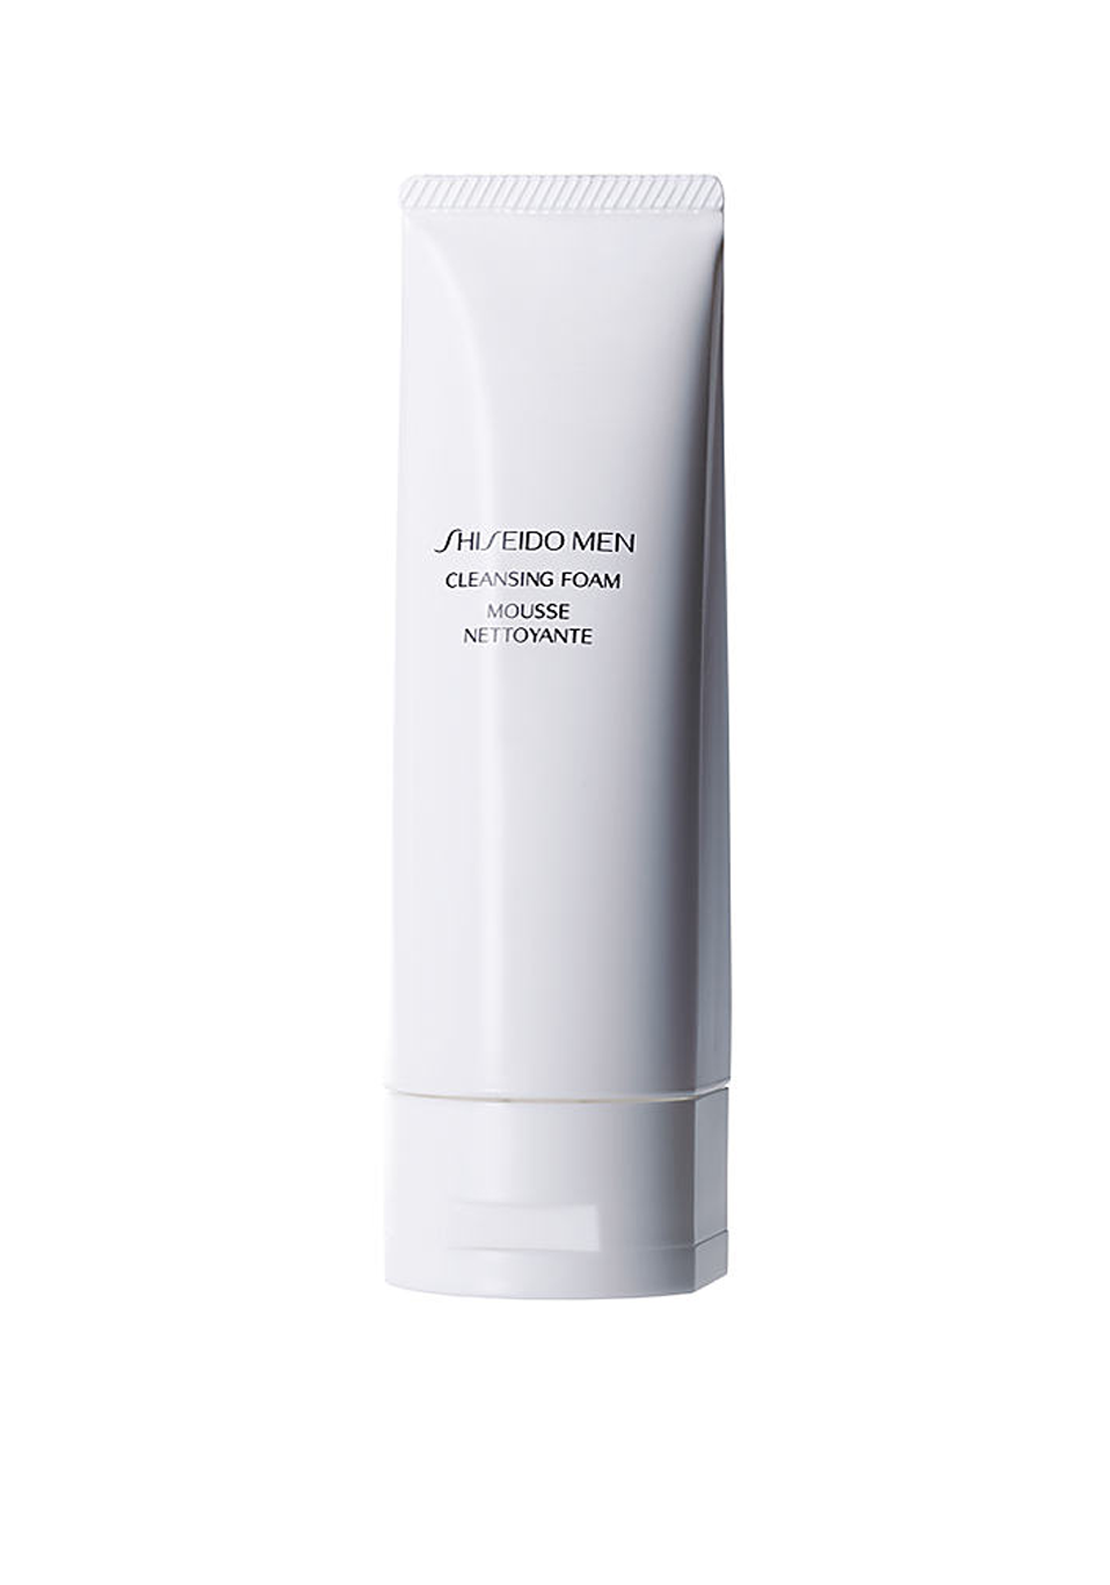 Shiseido Men Cleansing Foam Mousse, 125ml